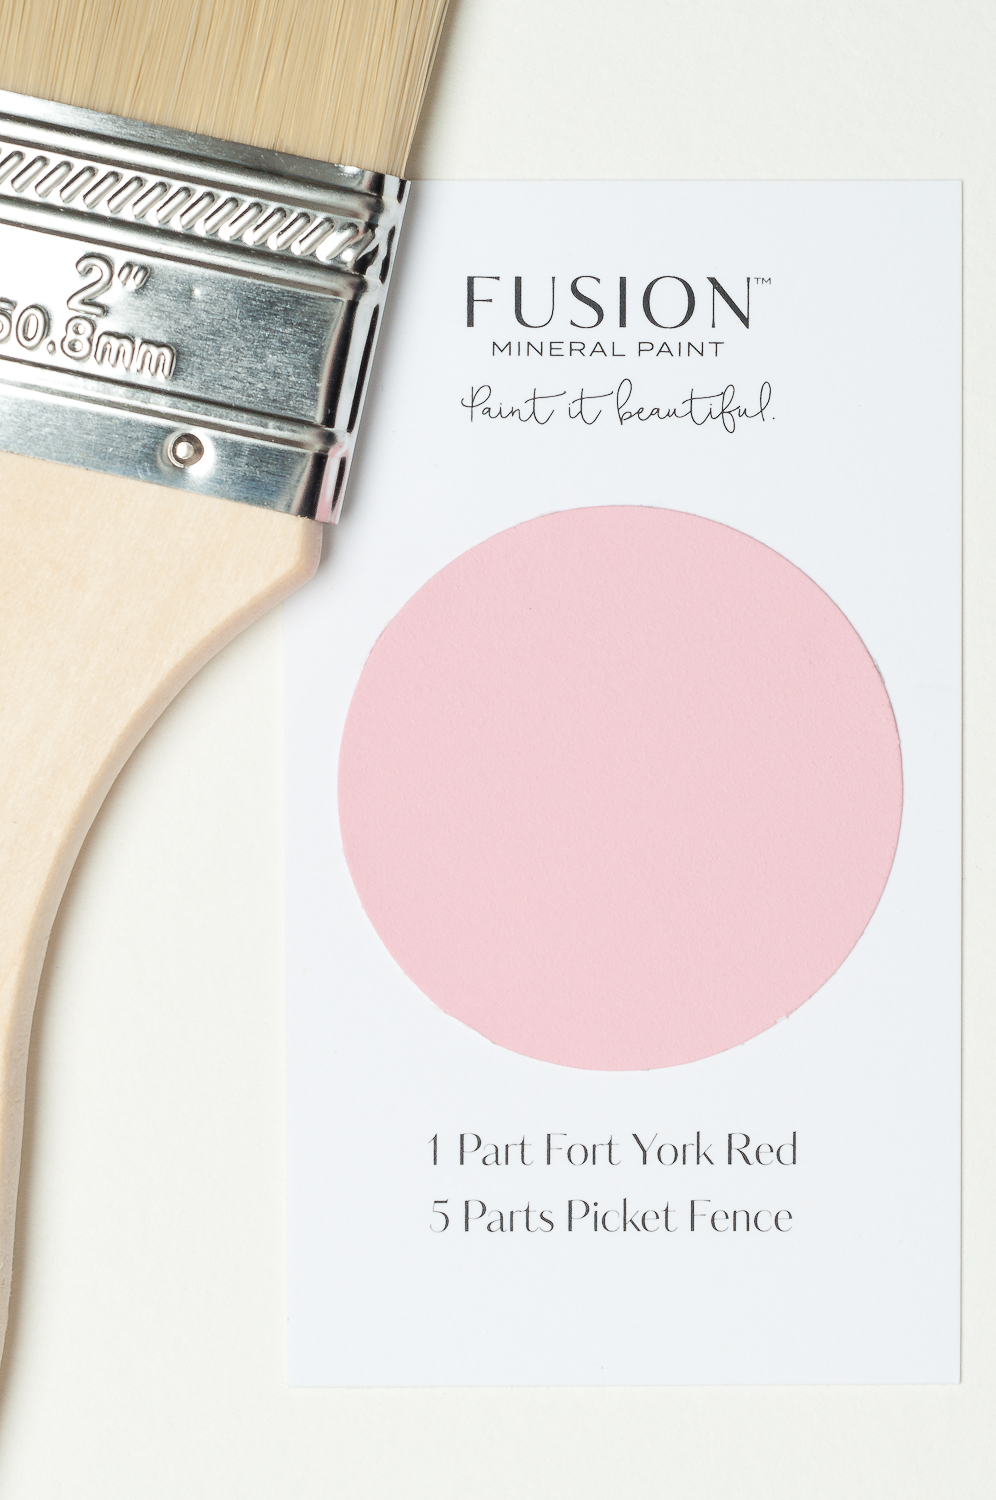 How to mix Fusion Mineral Paint colours to make the perfect Cotton Candy Pink.